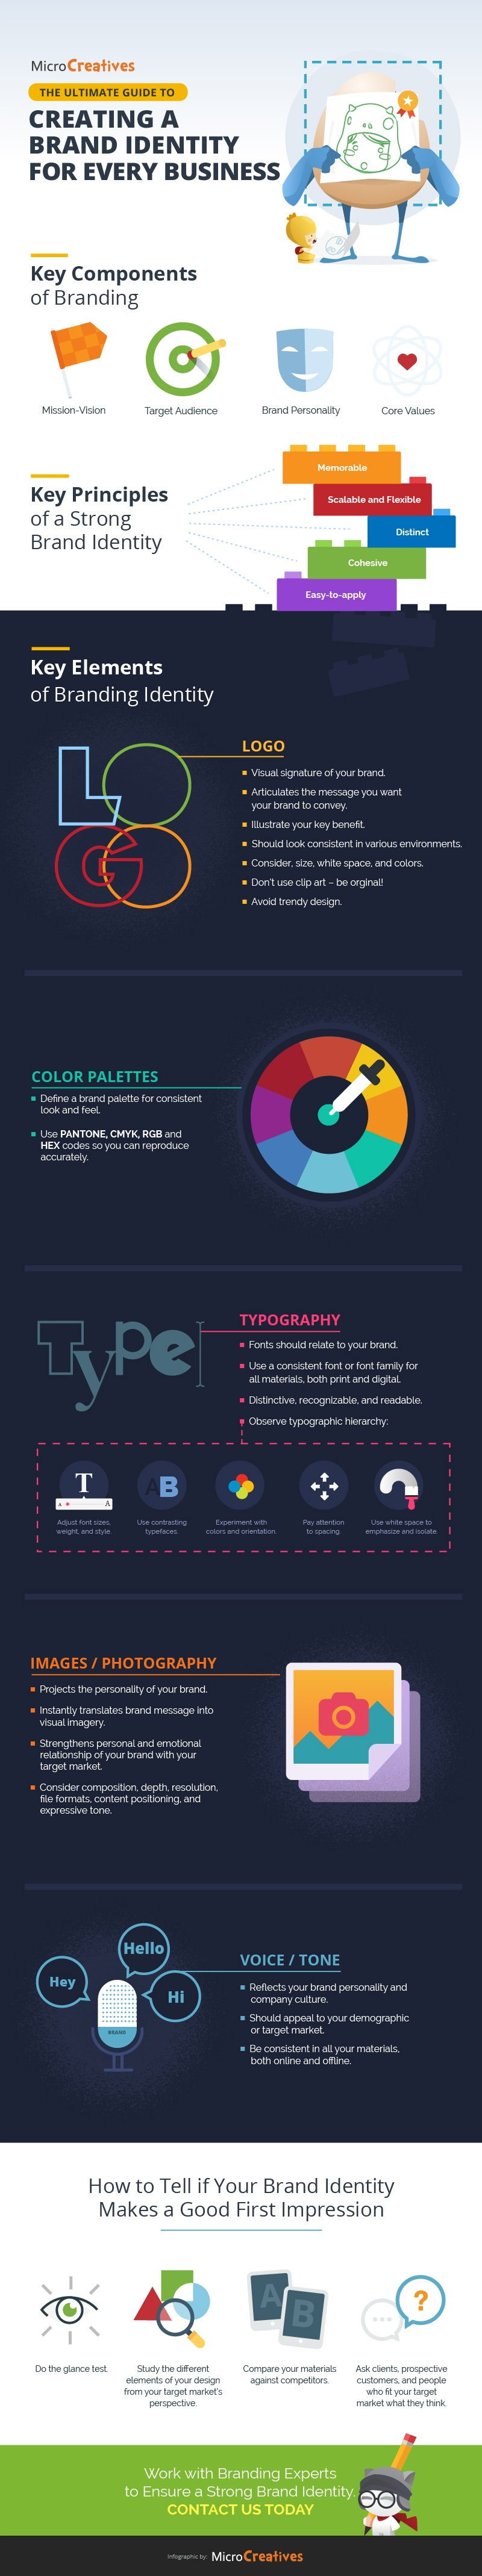 How to Create a Brand Identity that Resonates with Your Consumer - Infographic